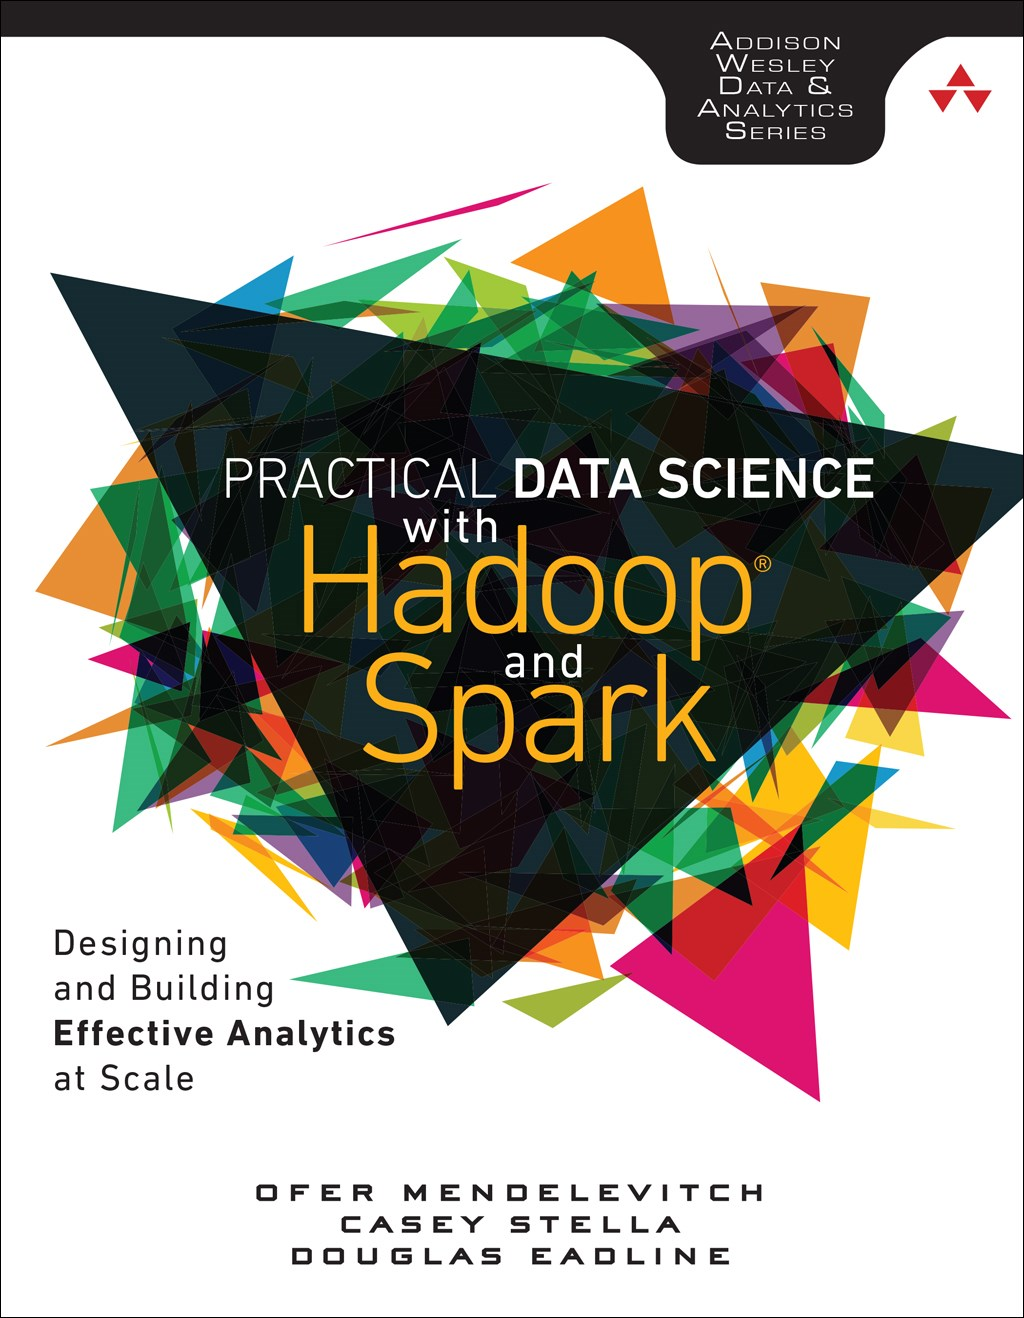 Practical Data Science with Hadoop and Spark: Designing and Building Effective Analytics at Scale